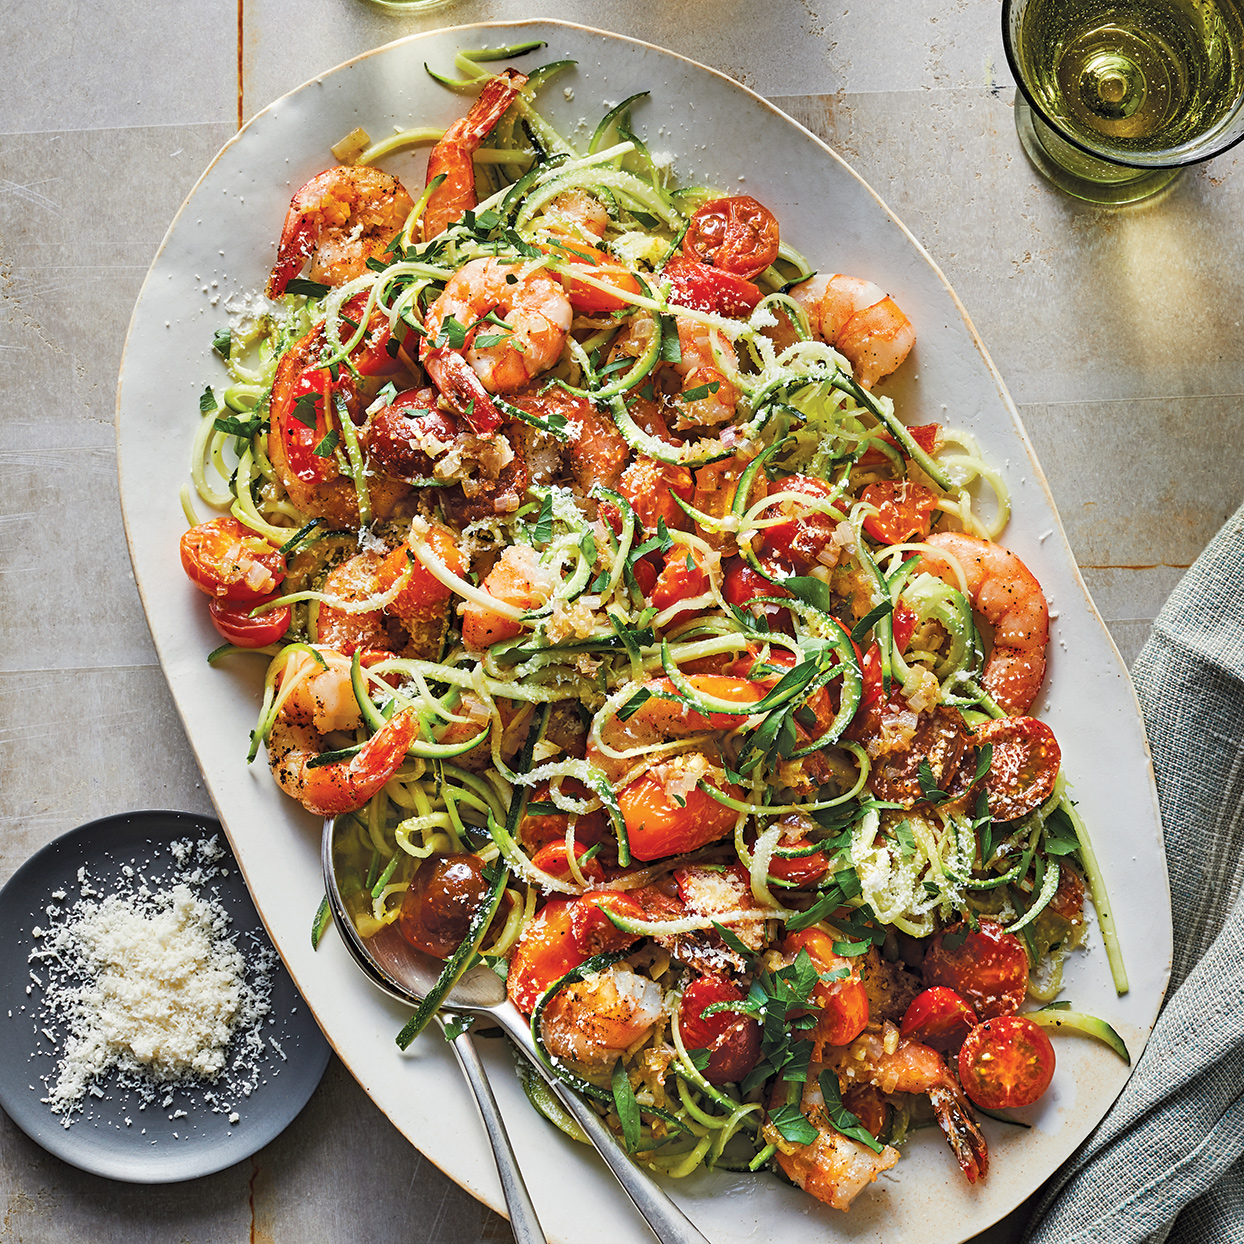 Enjoy classic shrimp scampi lightened up with a white wine-butter sauce and zucchini noodles in place of pasta. The tomatoes add some sweetness and color, while the cheese contributes nuttiness and richness. Source: 400 Calorie Recipes